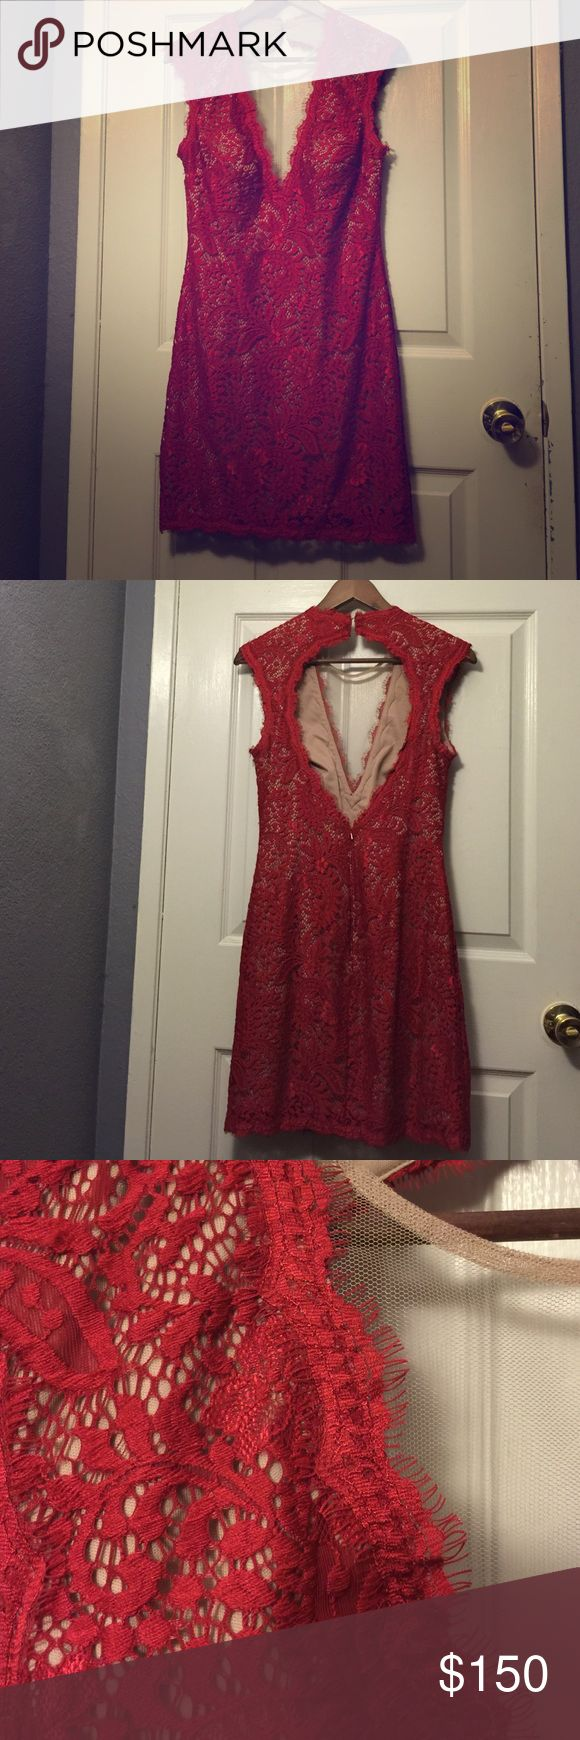 Dress Aqua dress size 8 worn once in flawless condition! Seen on real housewives of OC on vicki.  Beautiful nude underlay mesh and vibrant red lace Dresses